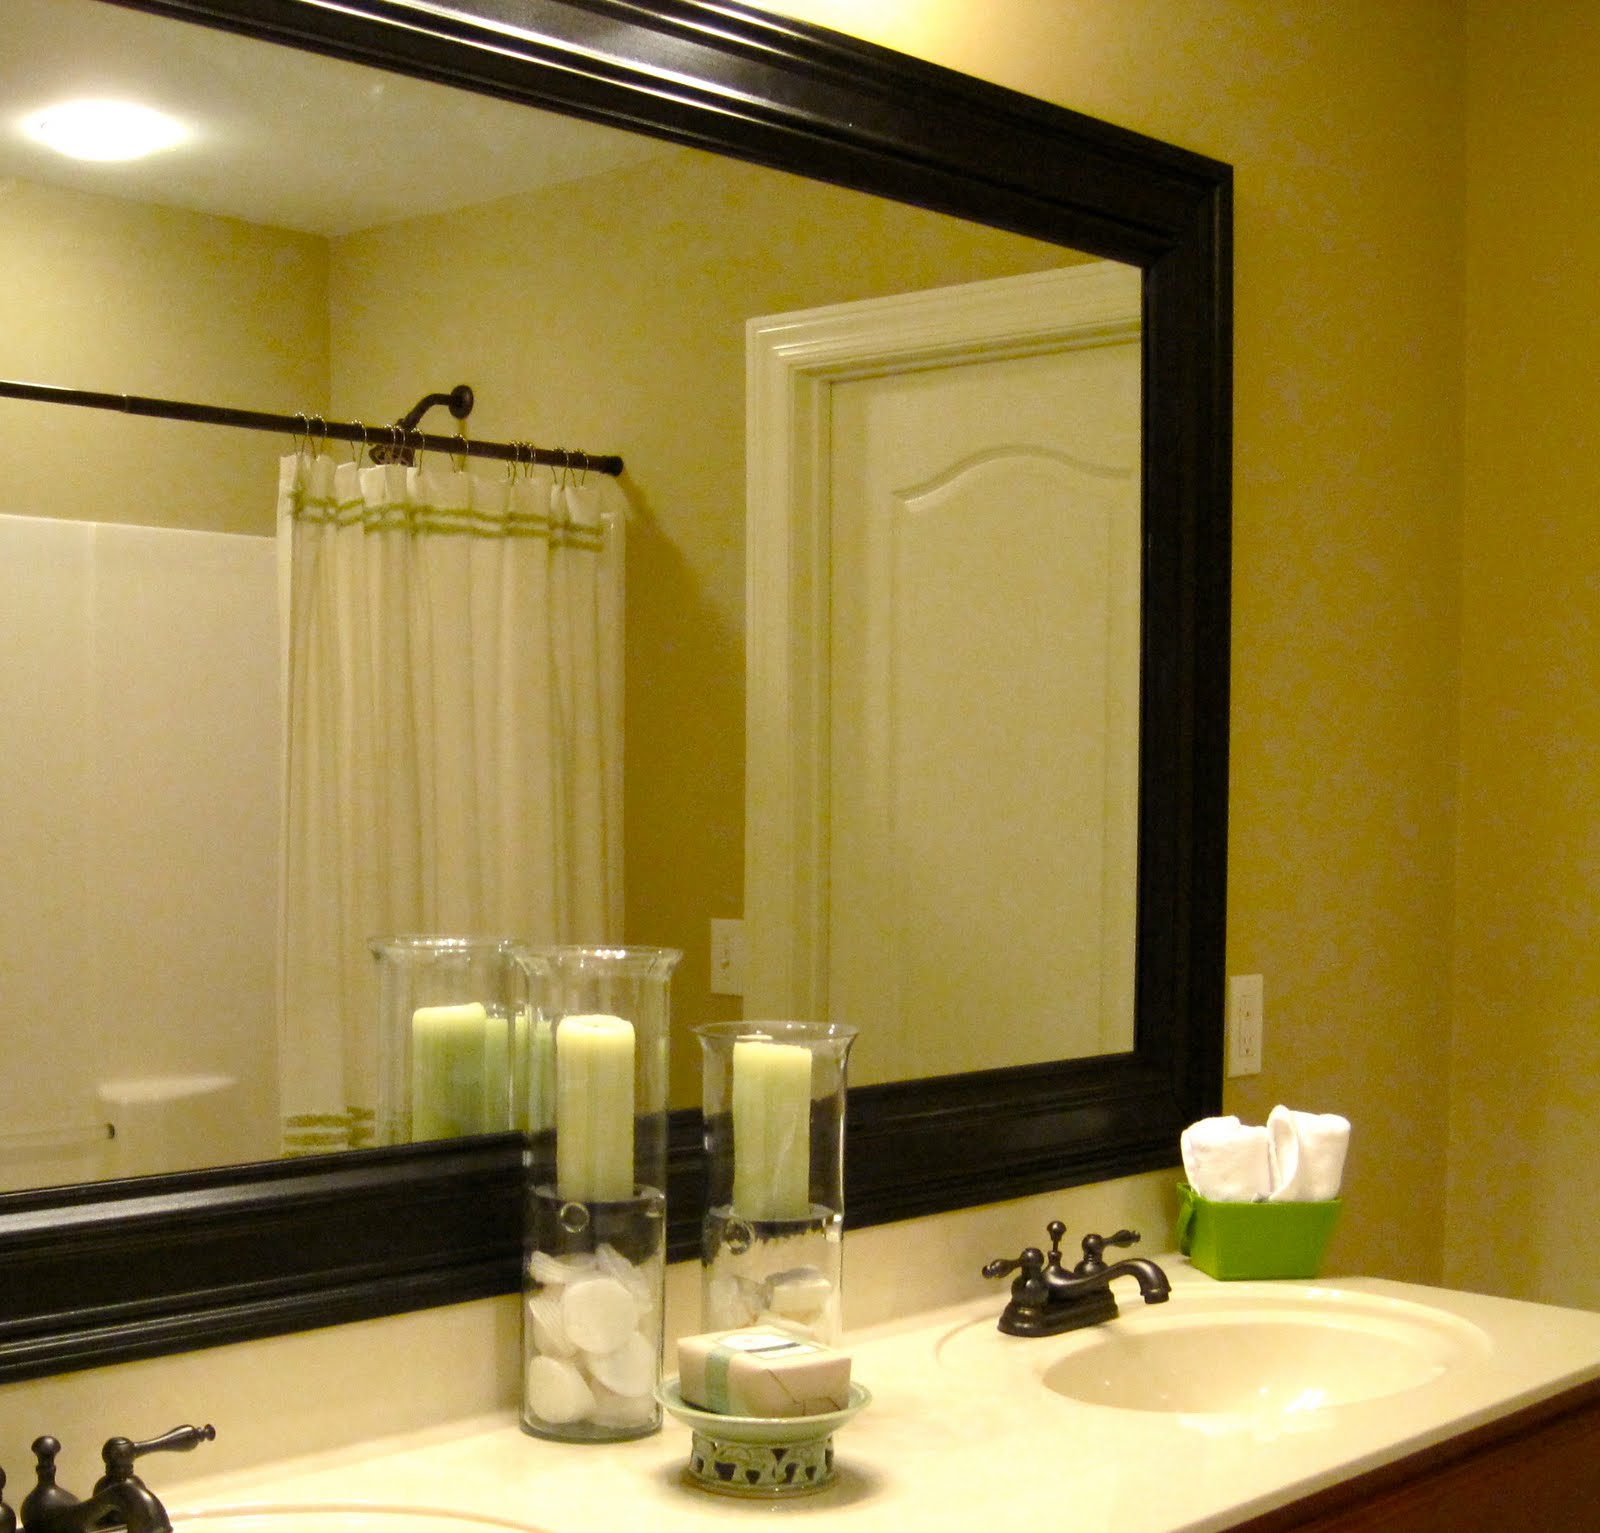 Framed bathroom vanity mirrors - Bathroom Mirror Frame